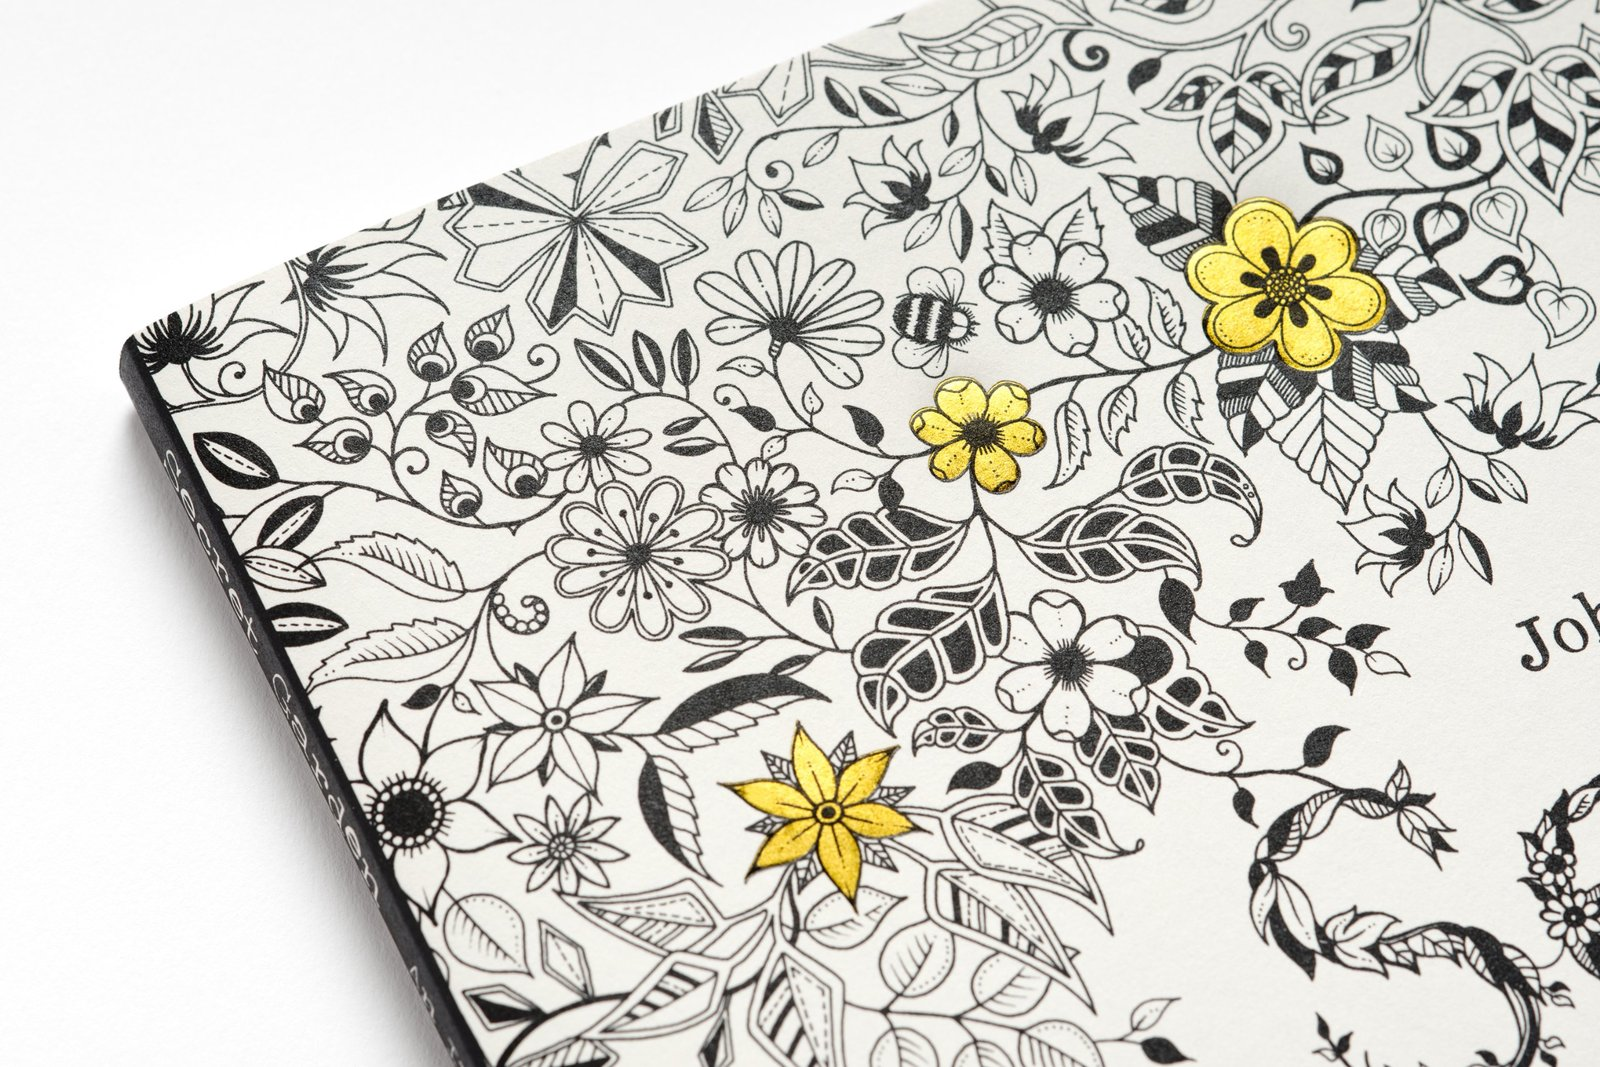 secret garden an inky treasure hunt and colouring book by johanna basford image - My Secret Garden Coloring Book